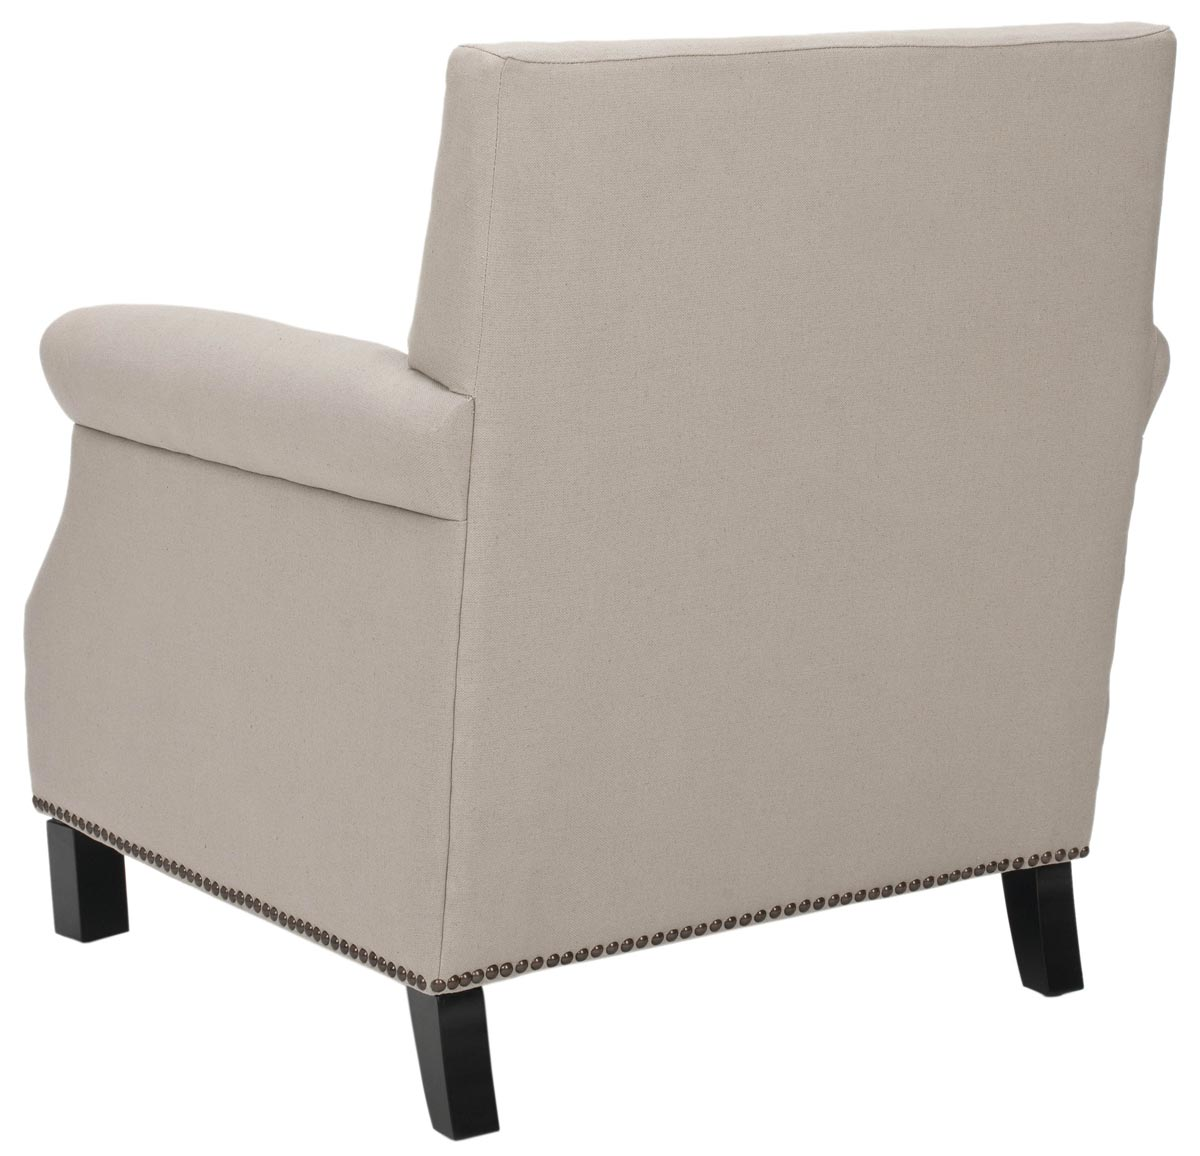 Safavieh - MCR4572B EASTON CLUB CHAIR